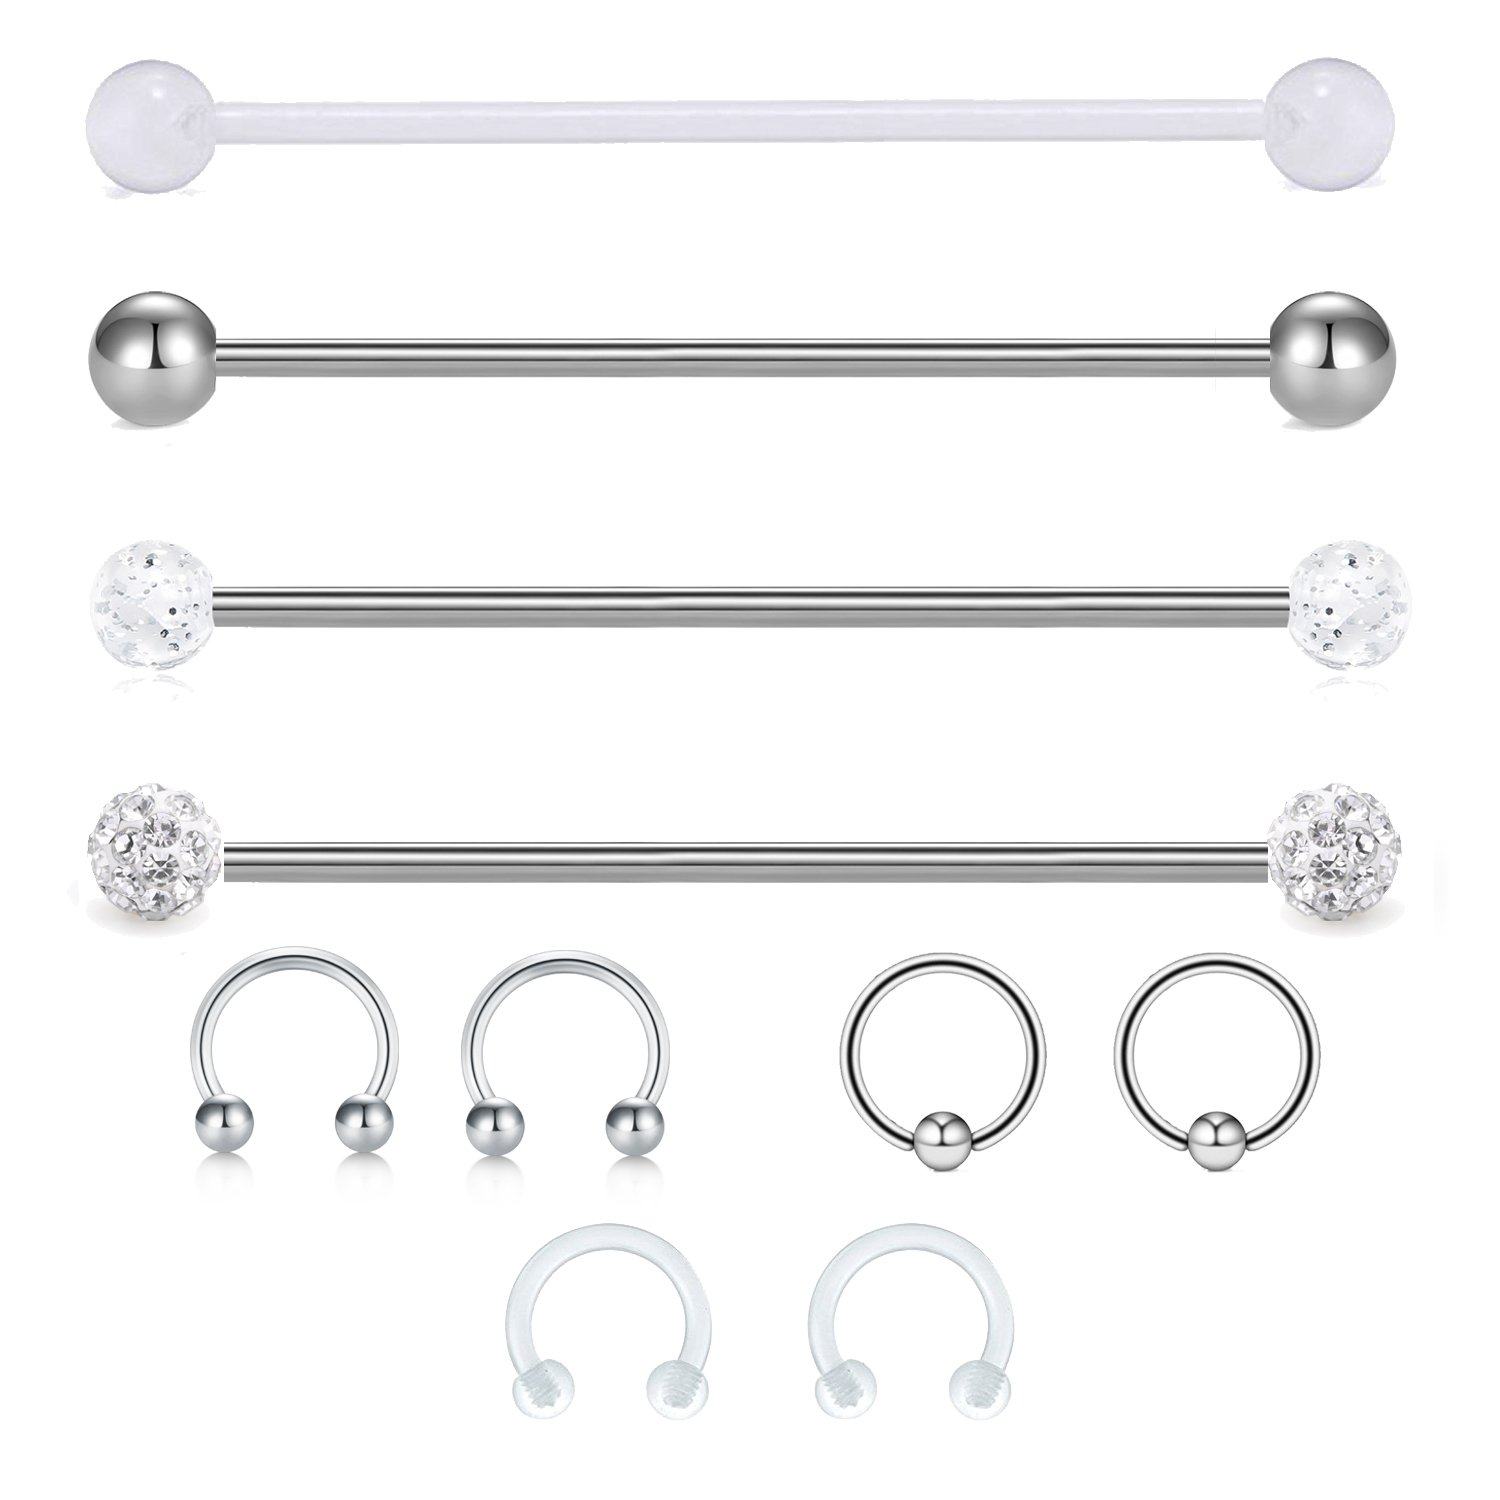 "JFORYOU 14G Cartilage Earring Industrial Barbells Surgical Steel Clear acrylic Industrial Cartilage Tragus Helix Earring, 1 1/2""(38mm) Body Piercing Jewelry 1 1/2""(38mm) JFORYOU Body Jewelry 38BB-012"